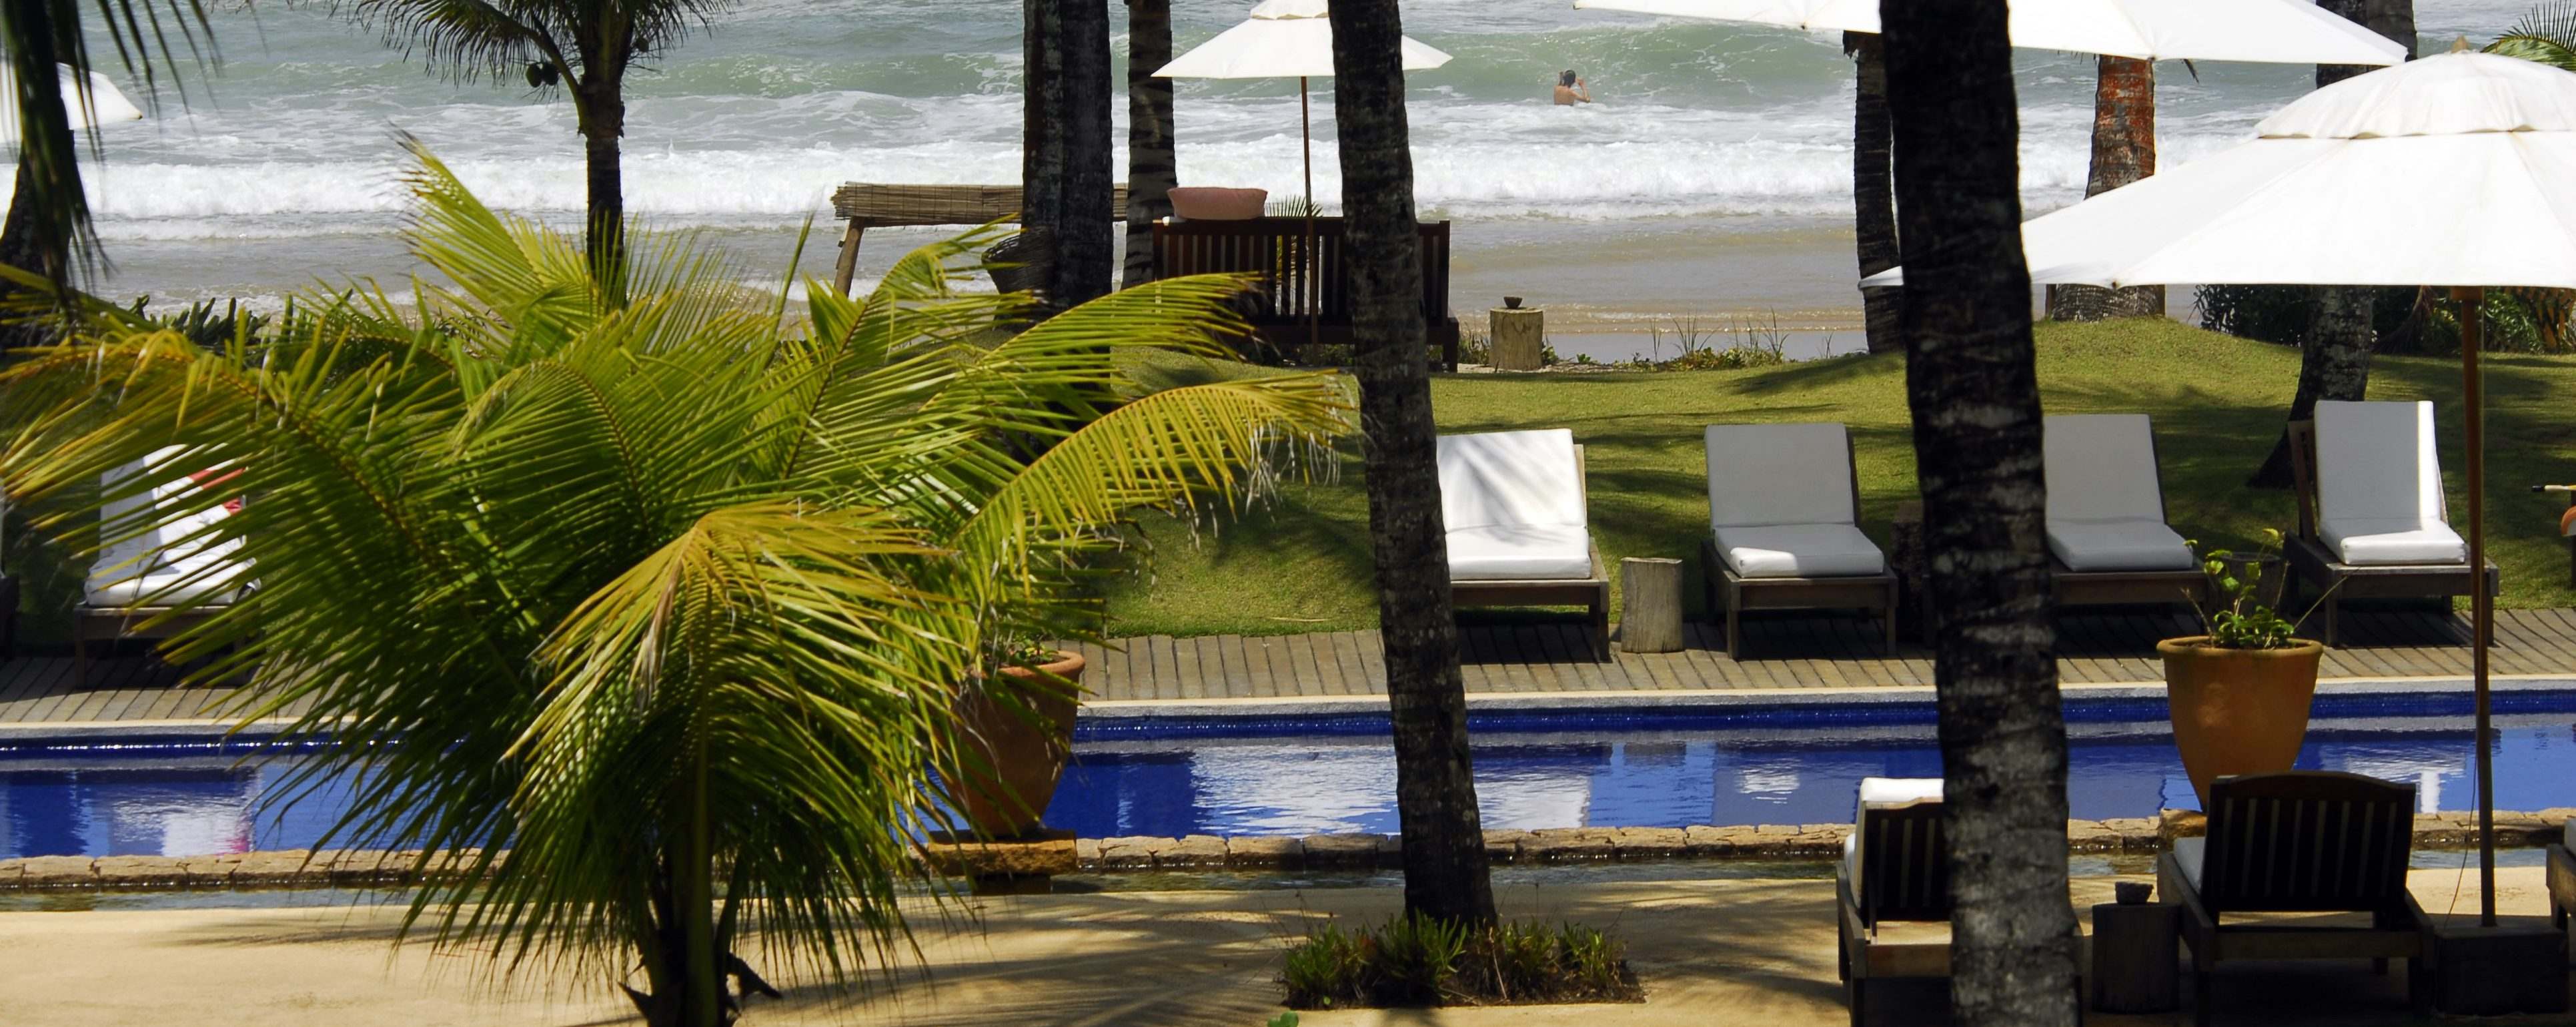 View of the beach from the pool at Txai resort Itacaré.